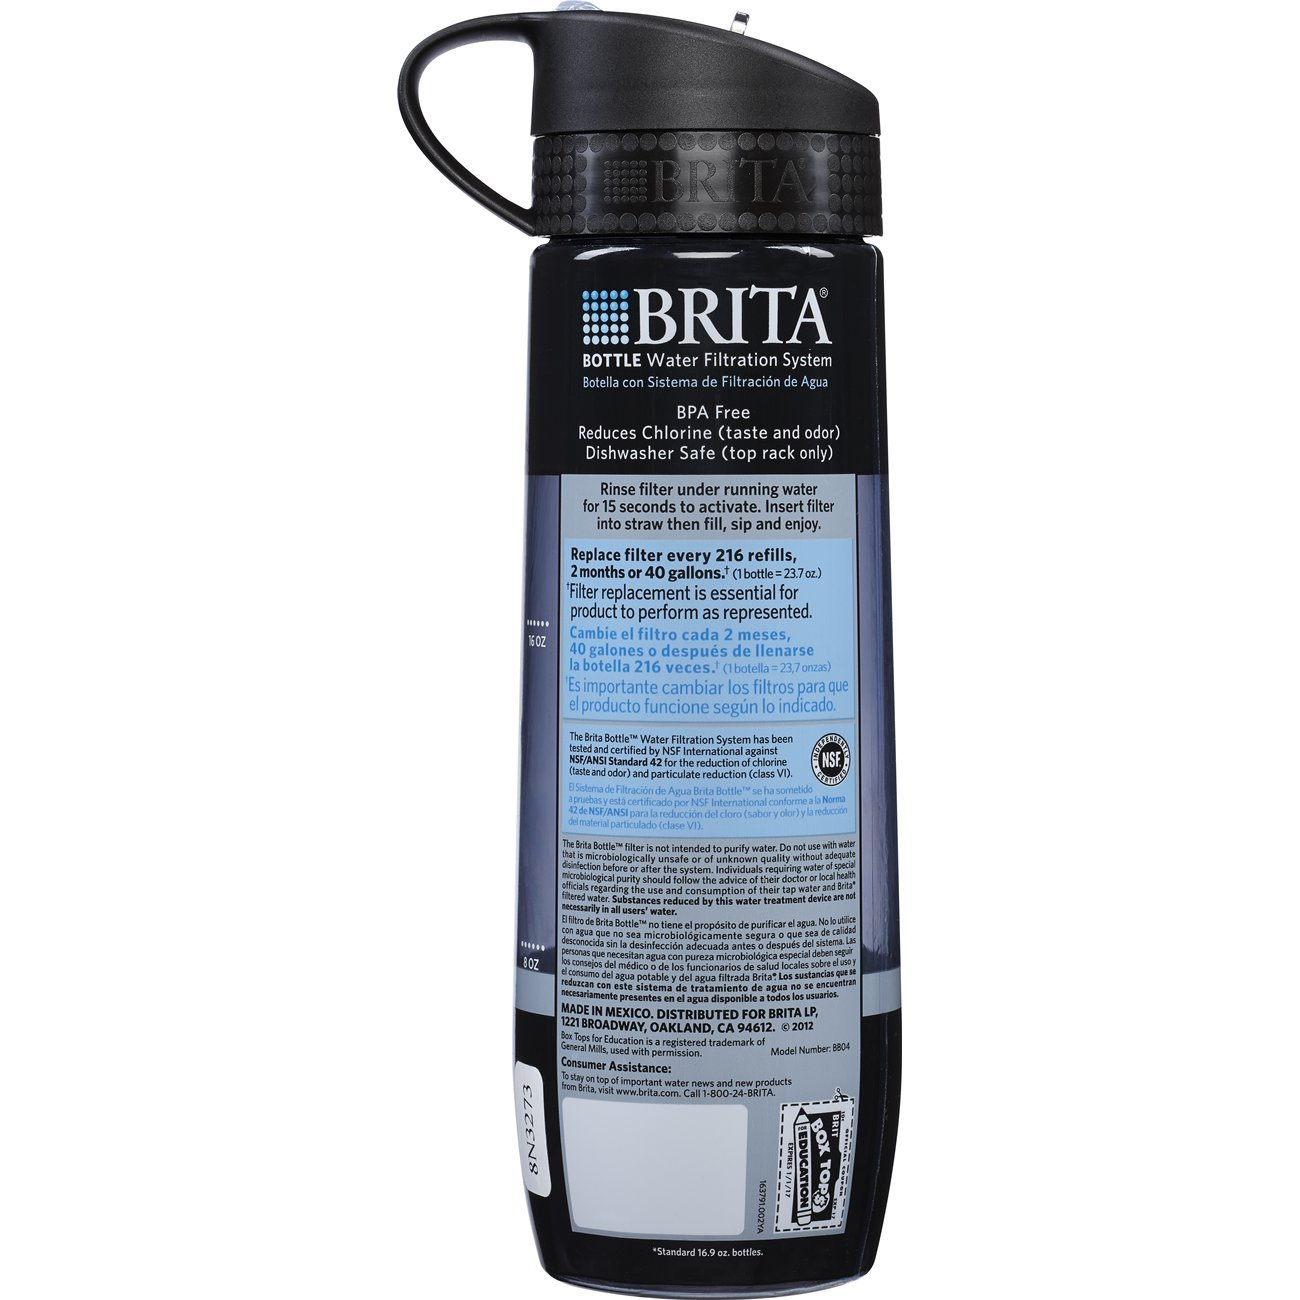 Brita 23.7 Ounce Hard Sided Water Bottle with Filter - BPA Free - Gray by Brita (Image #6)